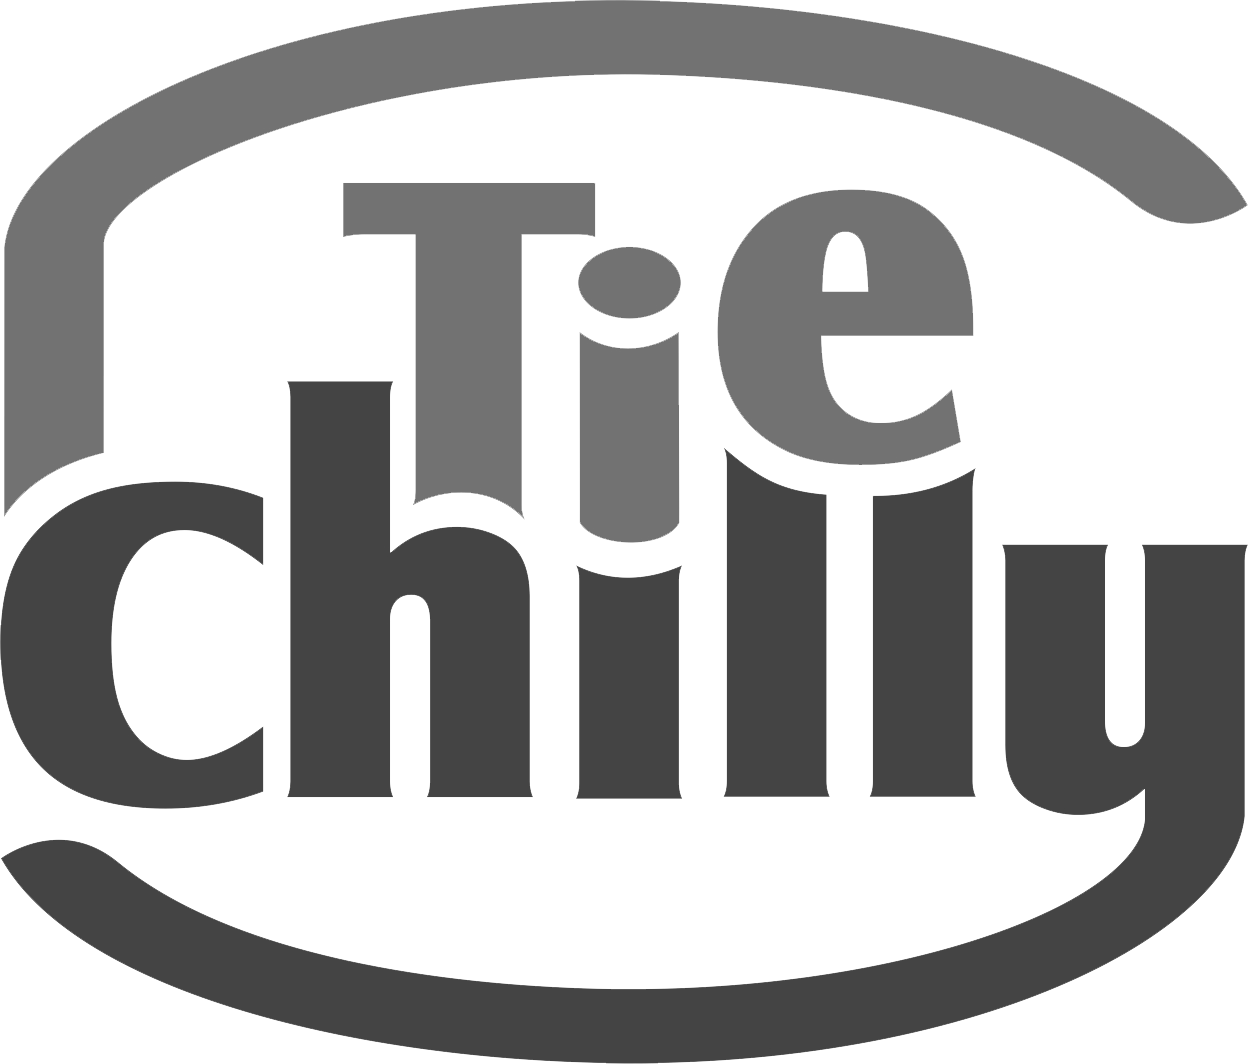 Tie Chilly Logo